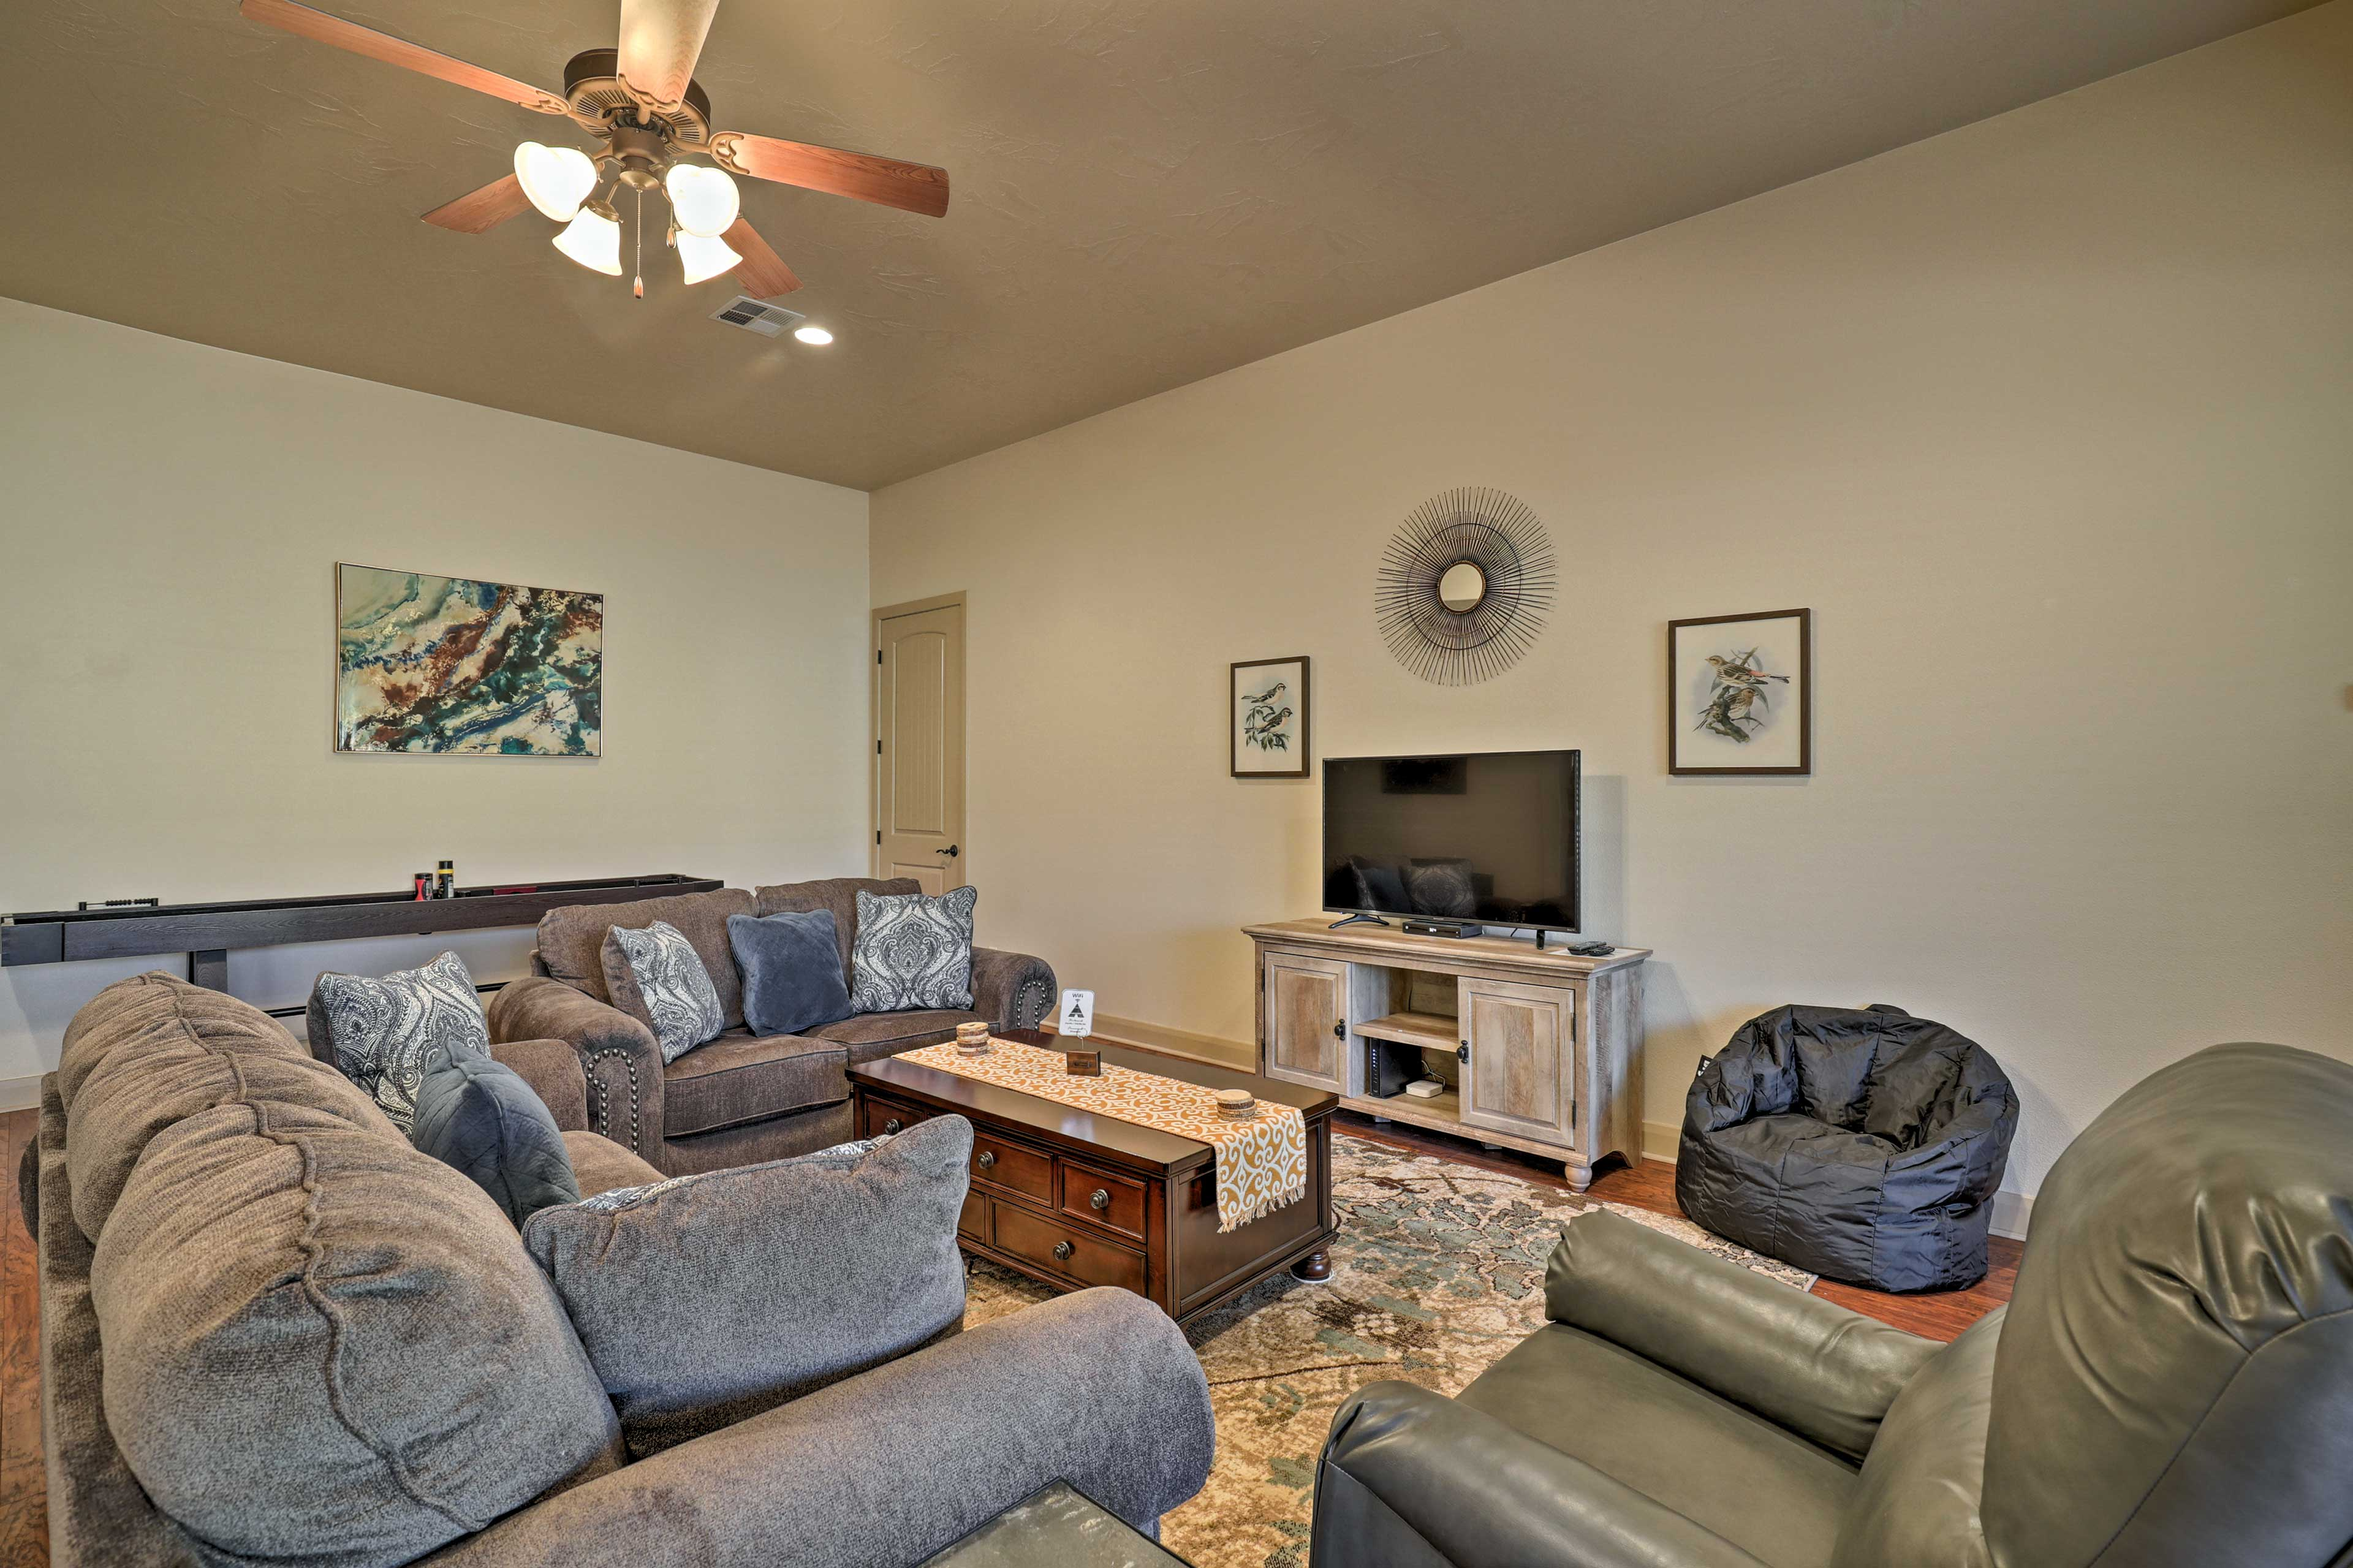 With 3 bedrooms and 2 bathrooms, this home accommodates 8.